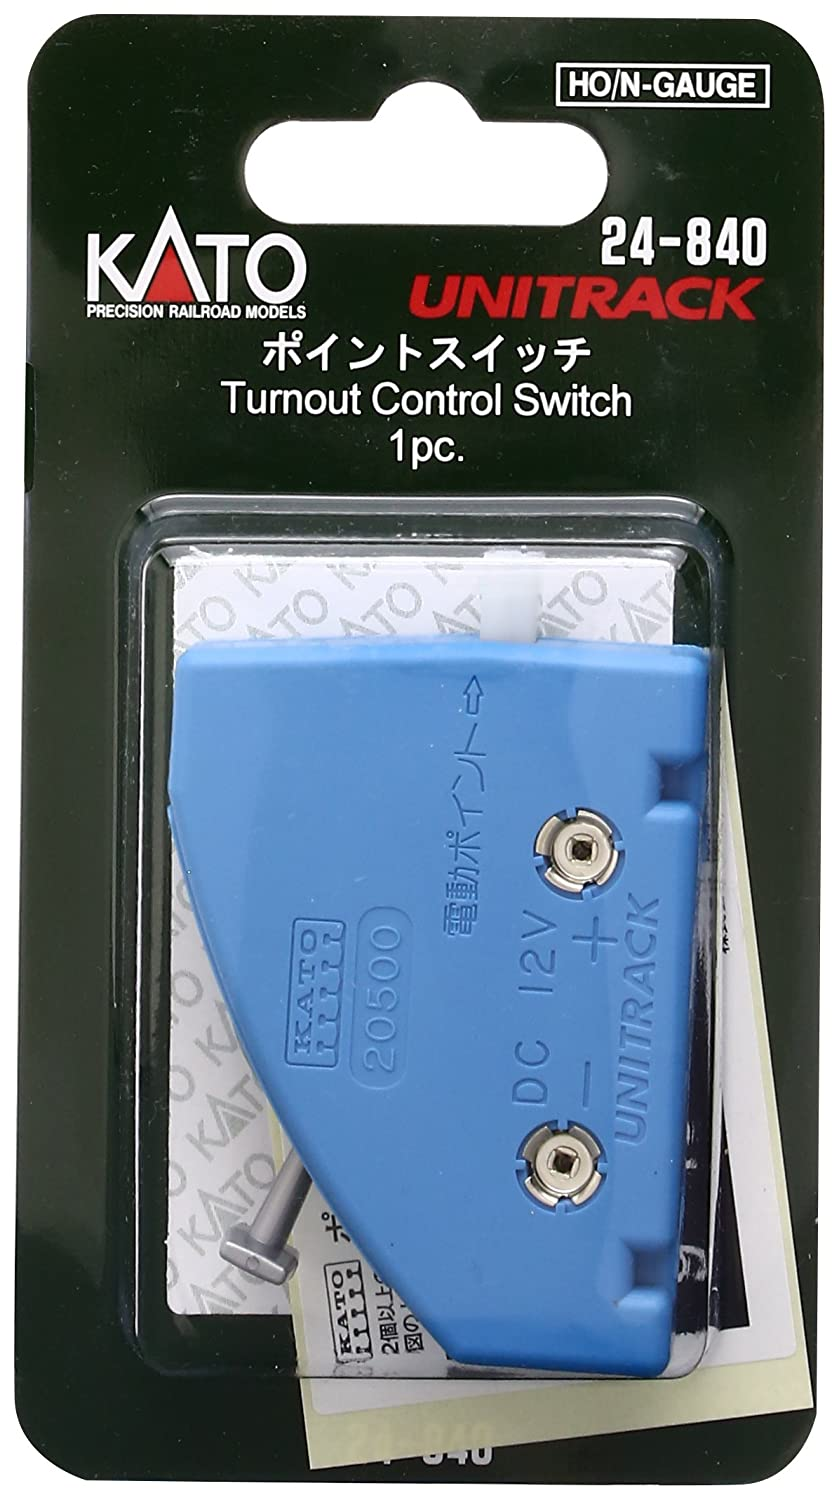 Unitrack Turnout Control Switch 1pc. (Model Train) Kato 24-840